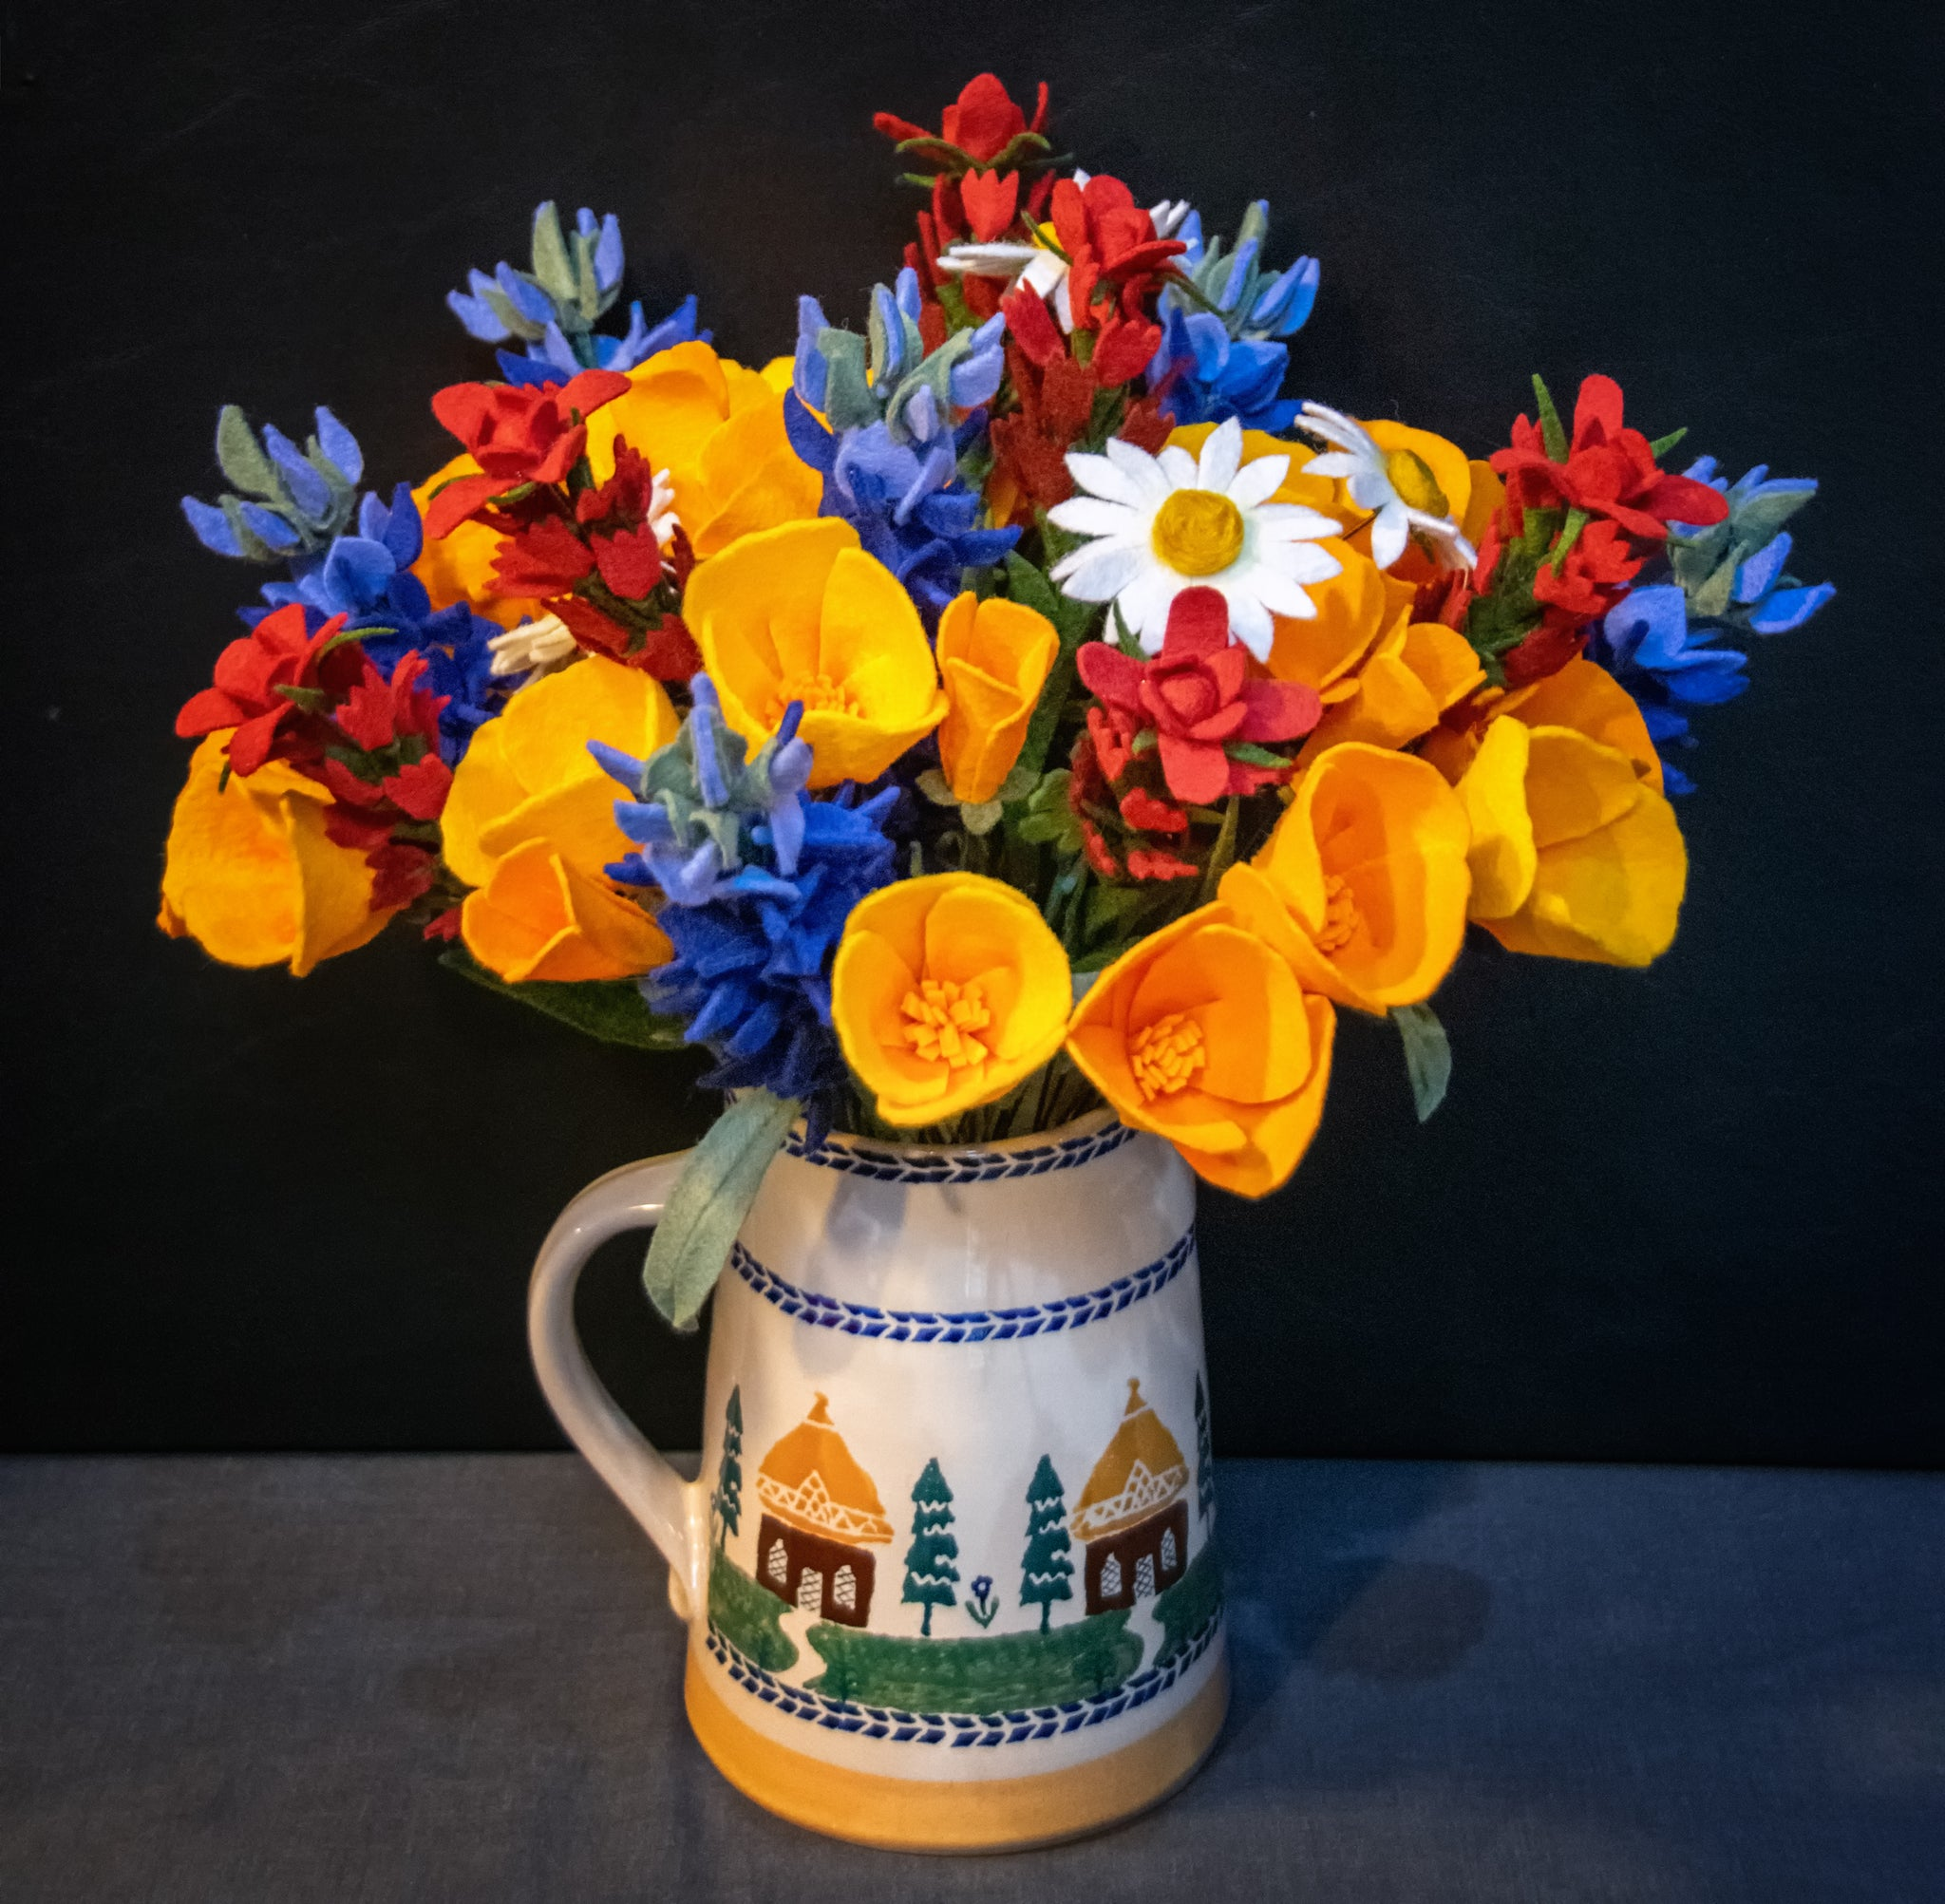 Completed California Poppies in a Bouquet